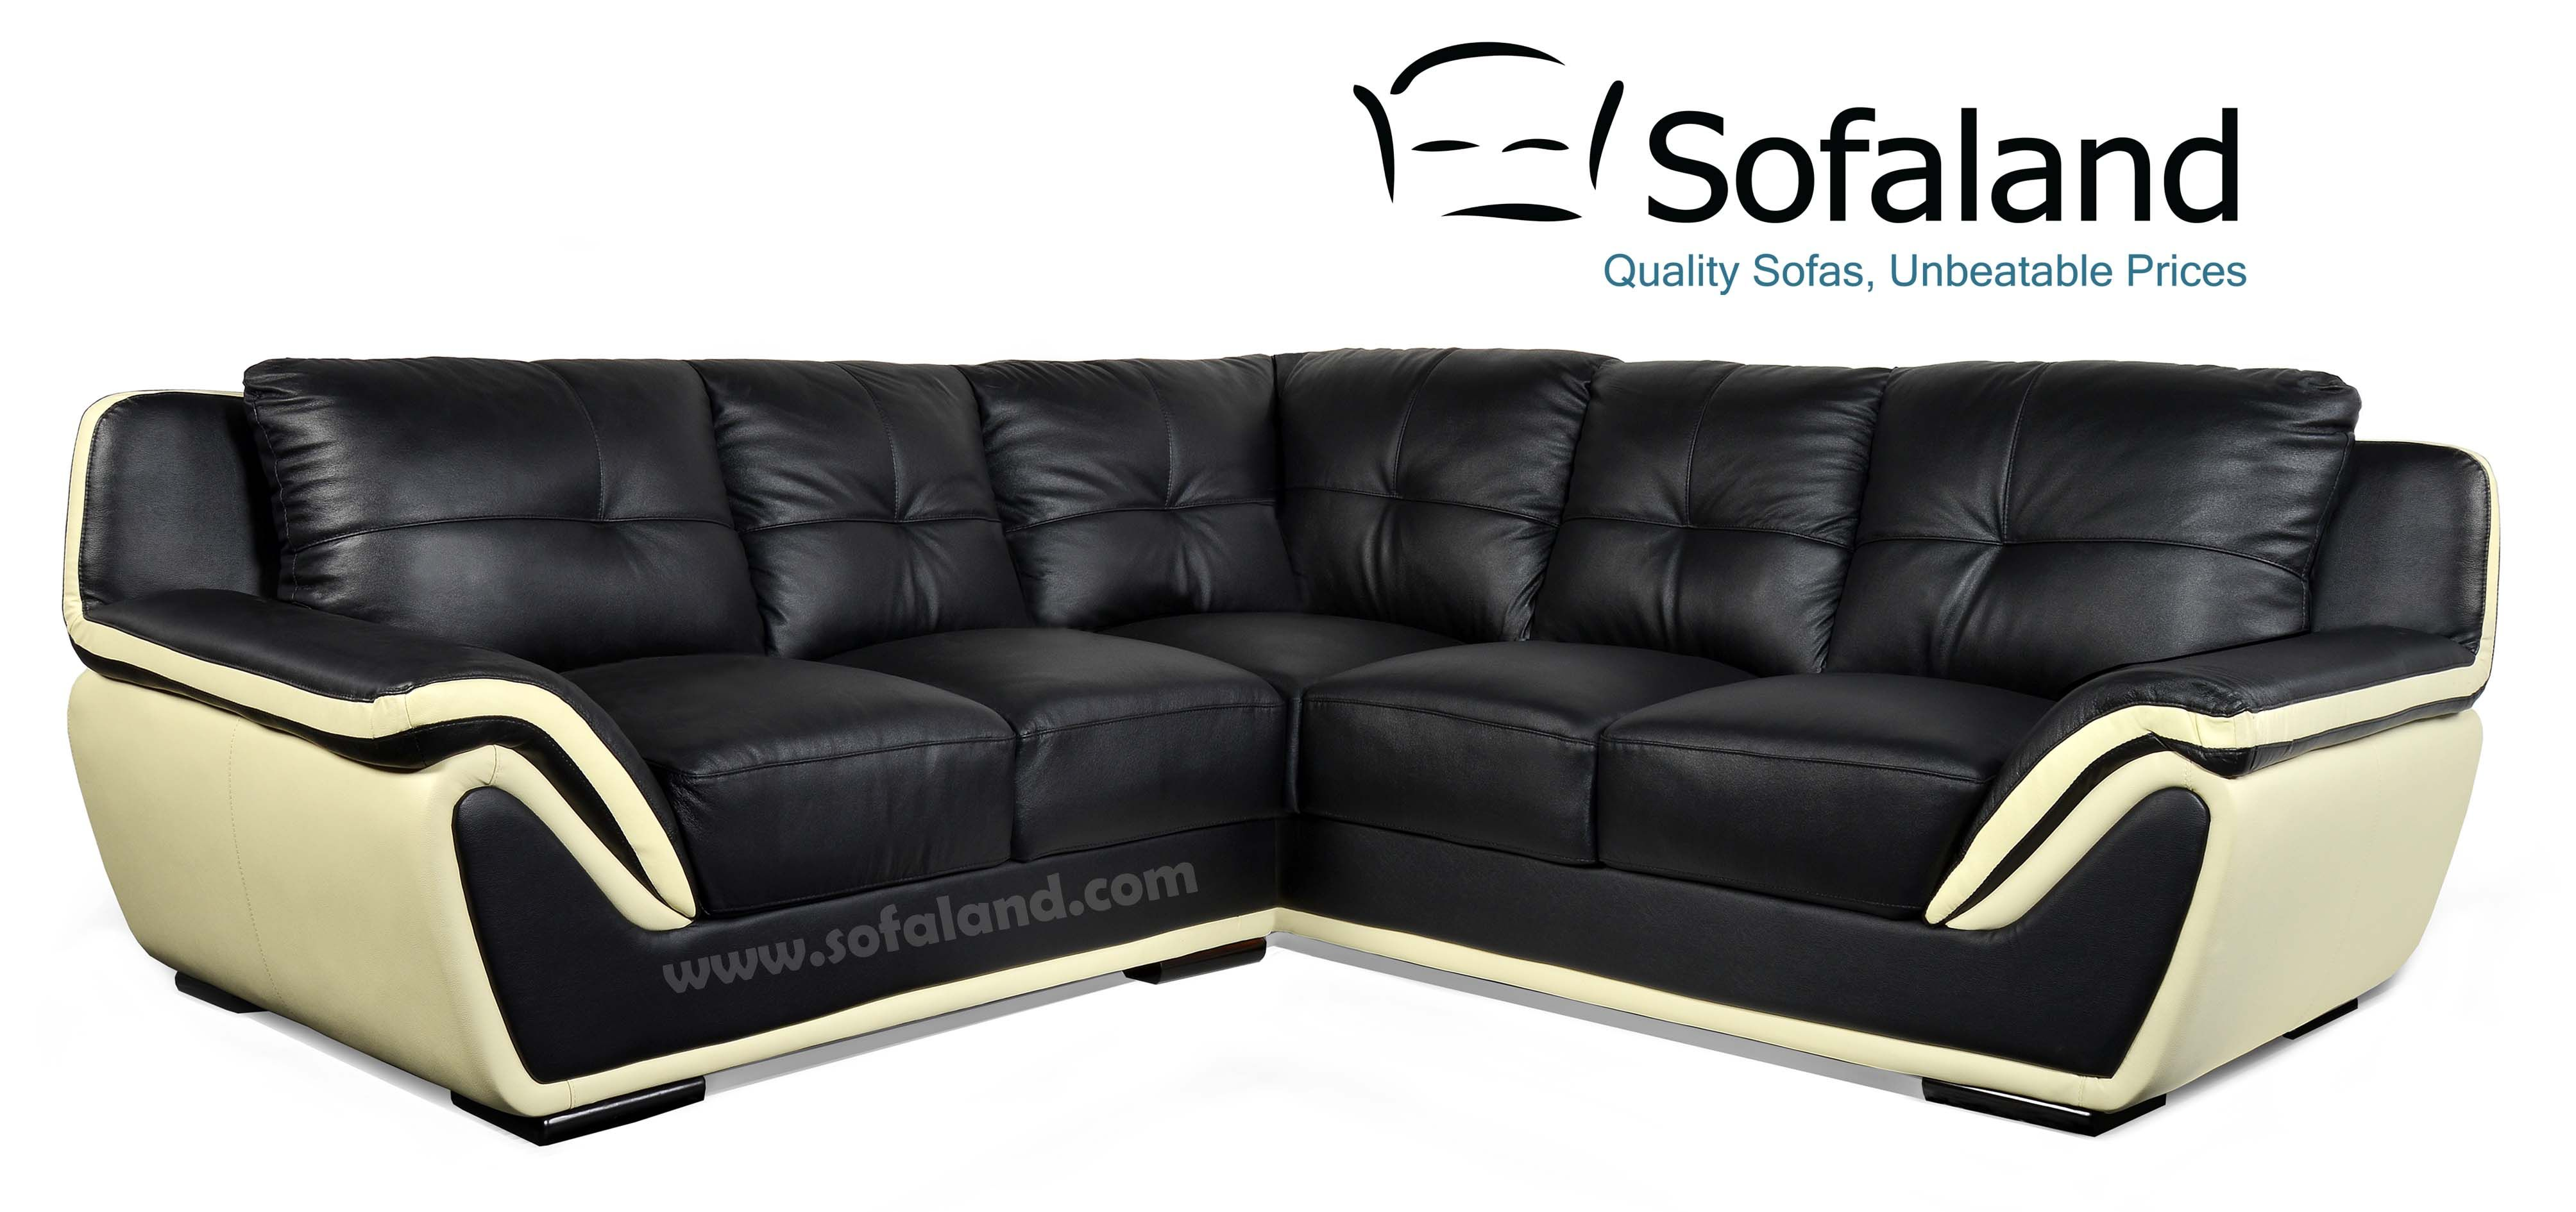 Sofaland Sectional Cheap Leather Sofas Online